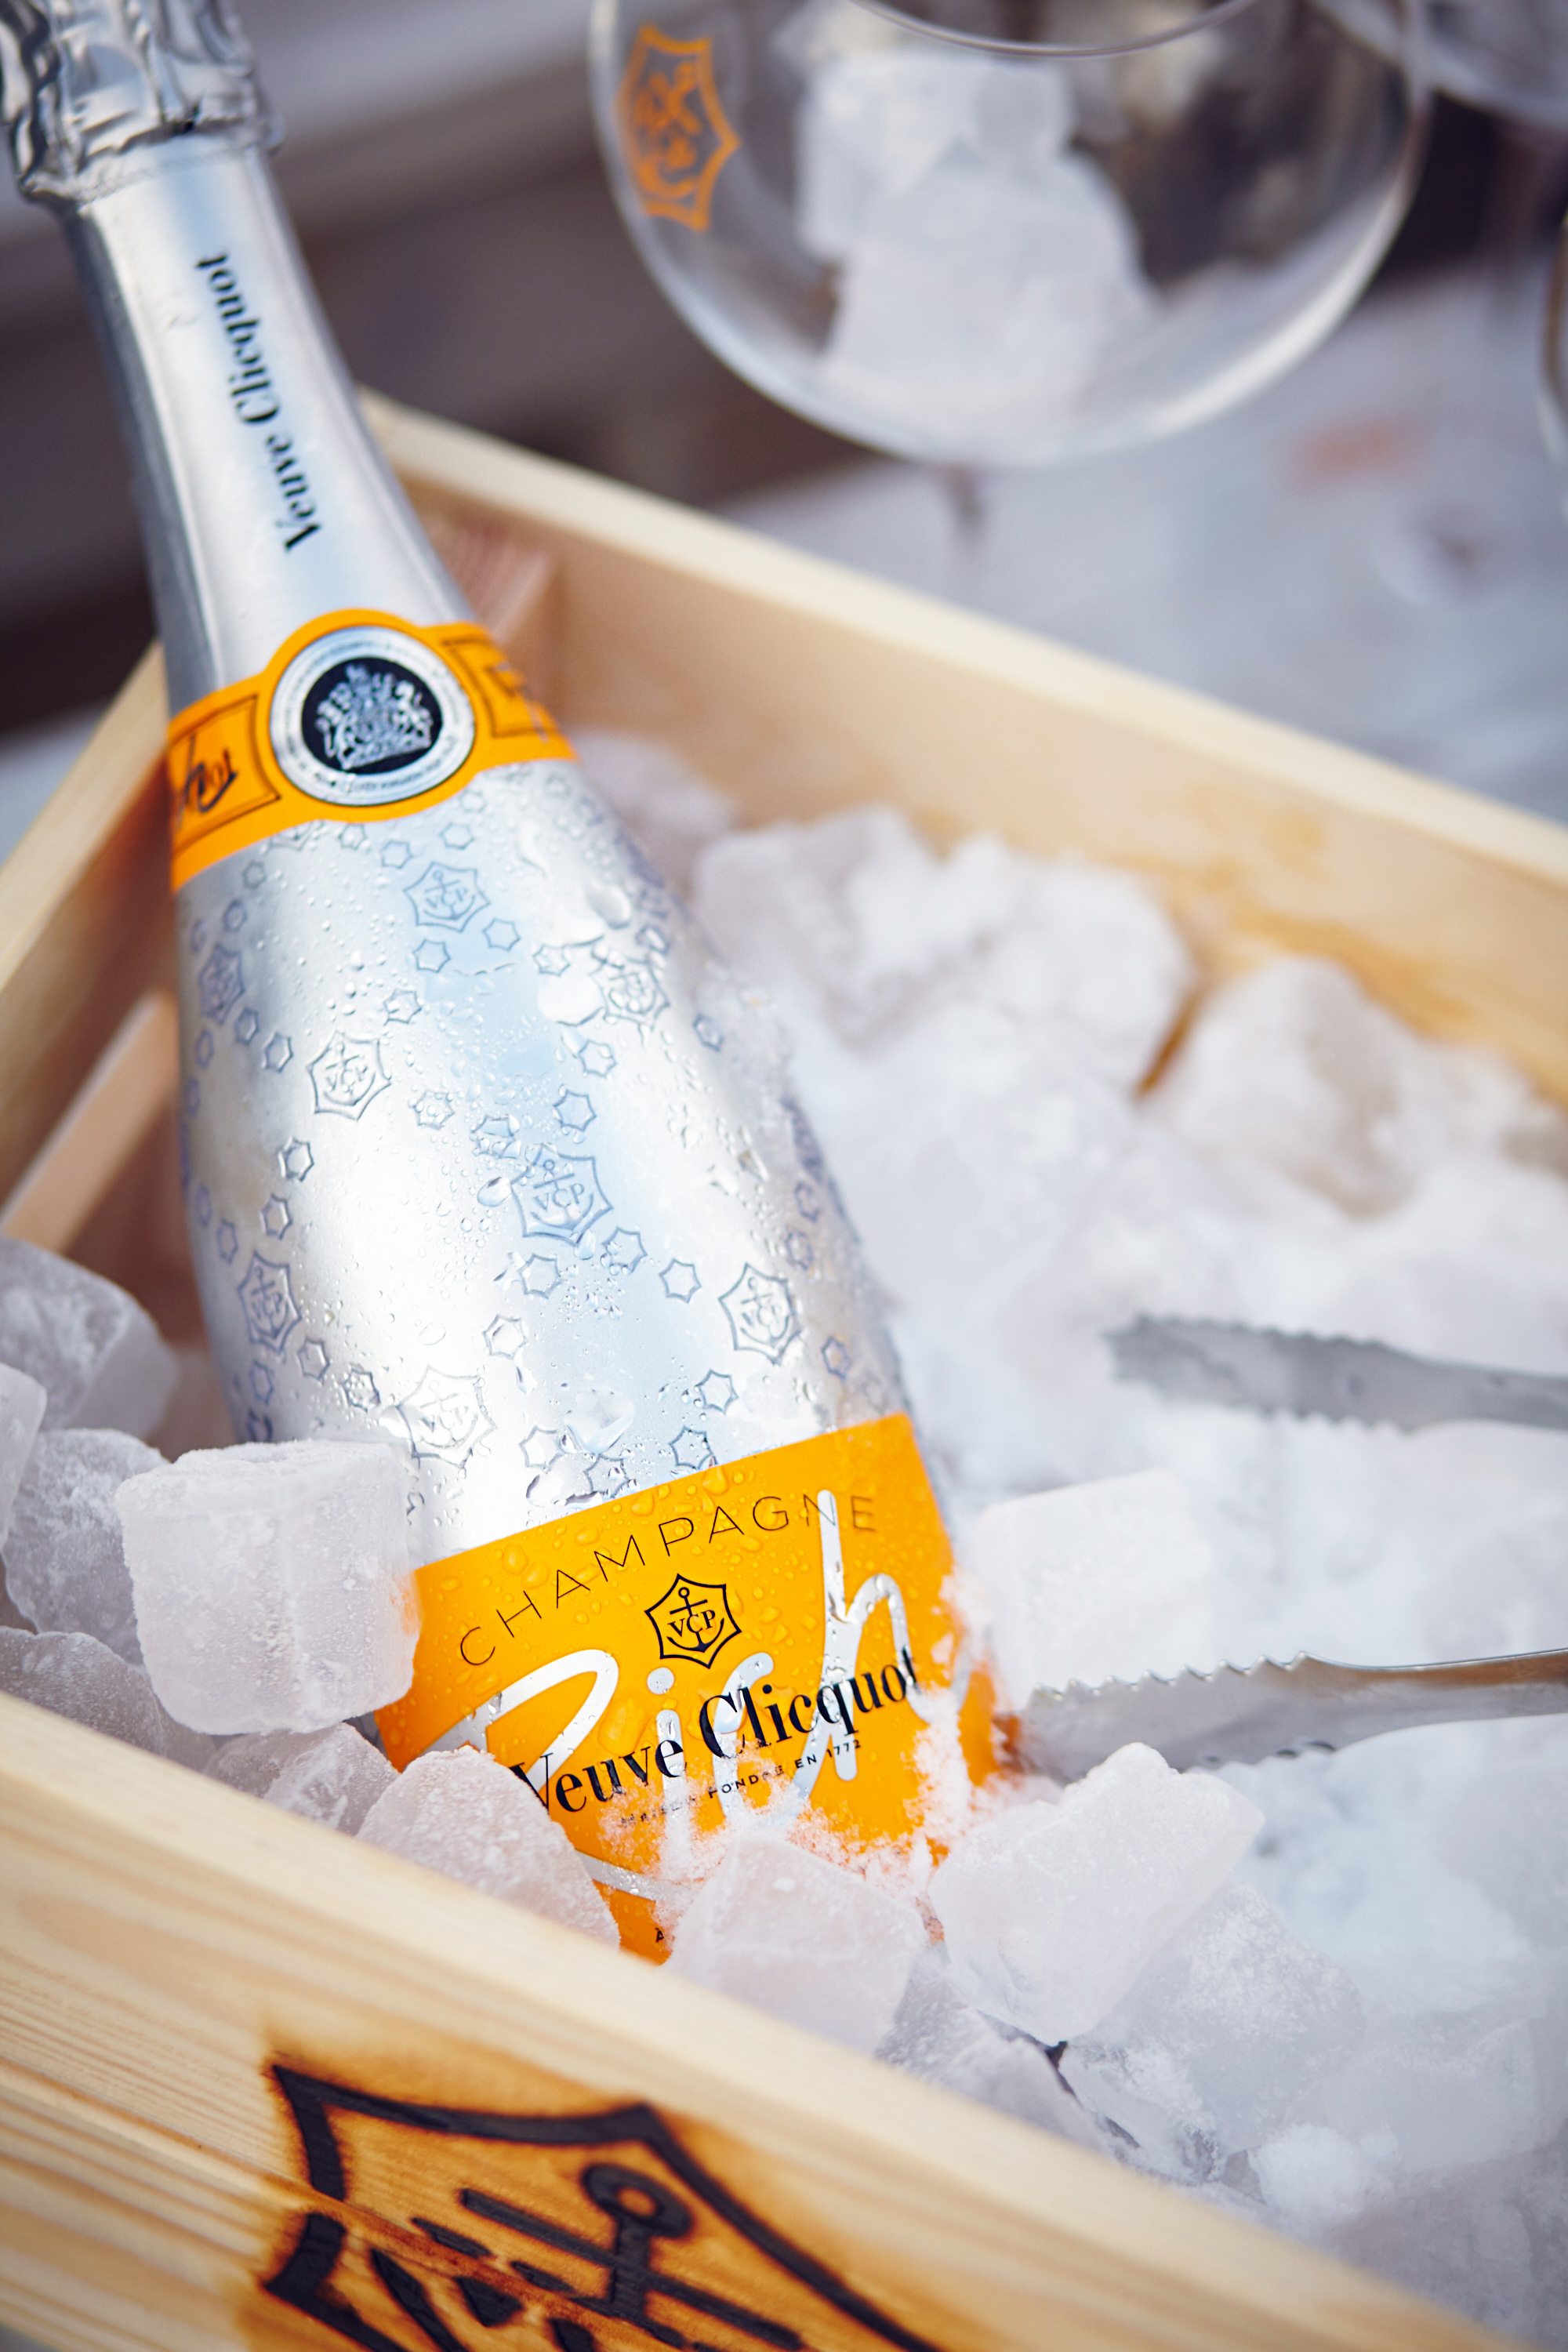 Veuve-Clicquot-Haubentaucher-Party-30